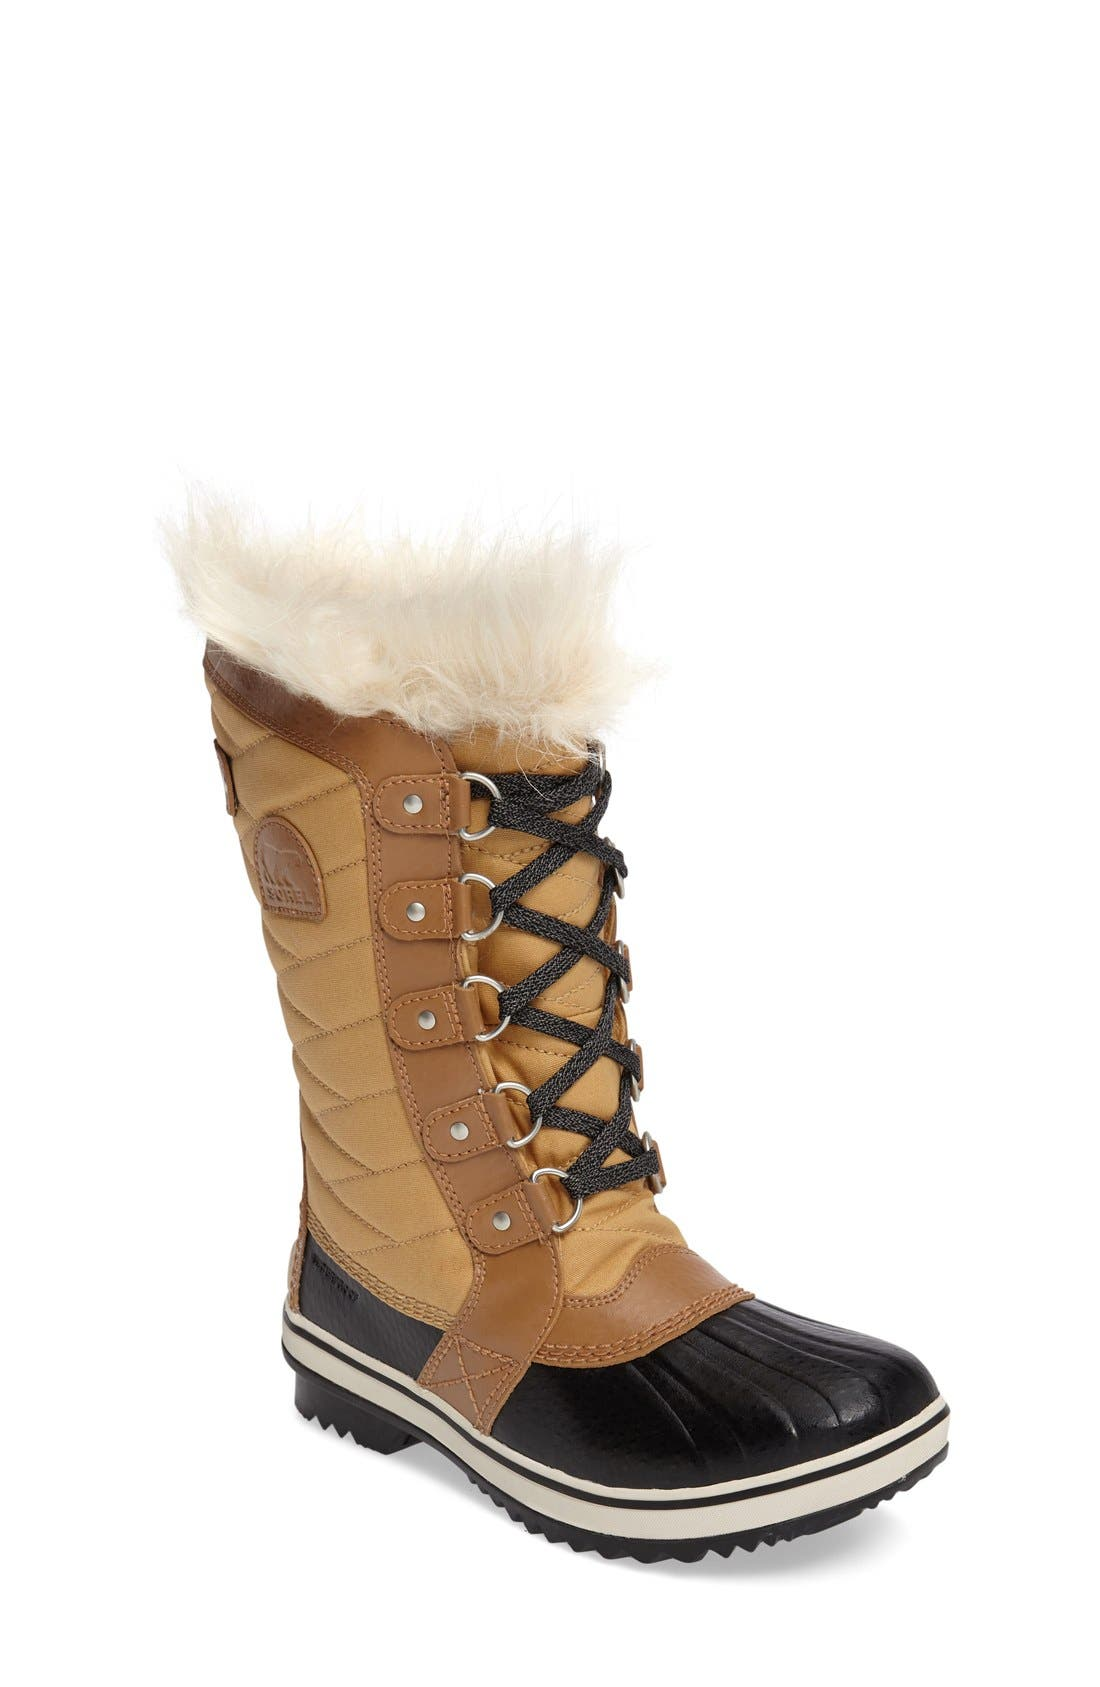 Tofino II Faux Fur Lined Waterproof Boot,                         Main,                         color, CURRY/ ELK